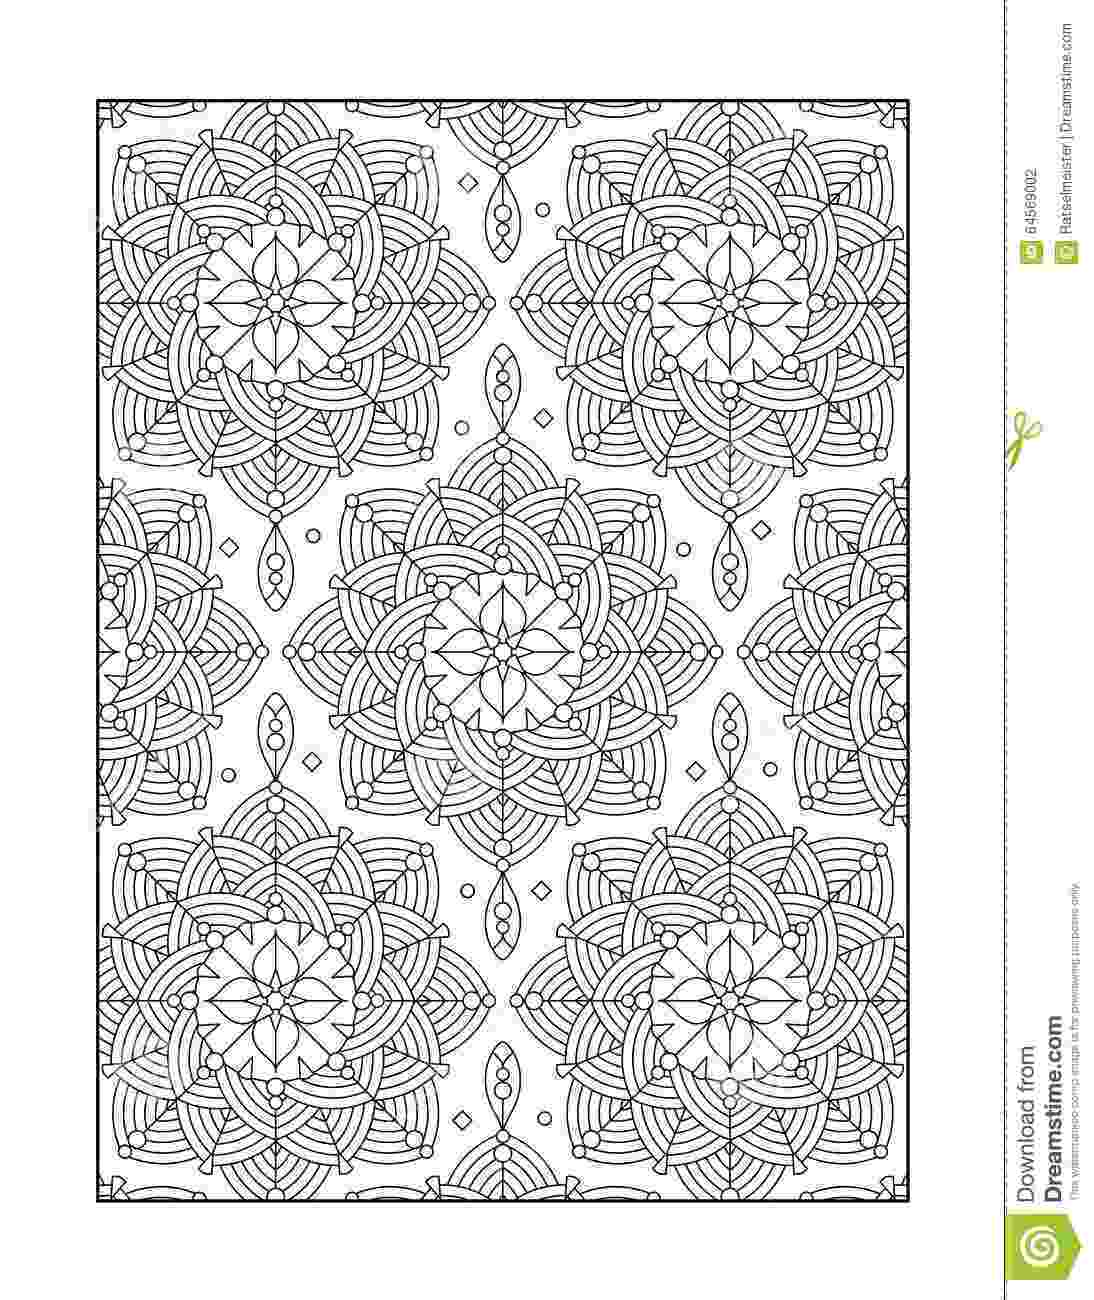 black and white coloring pages for adults black white flower pattern coloring doodle stock vector black coloring for adults and white pages